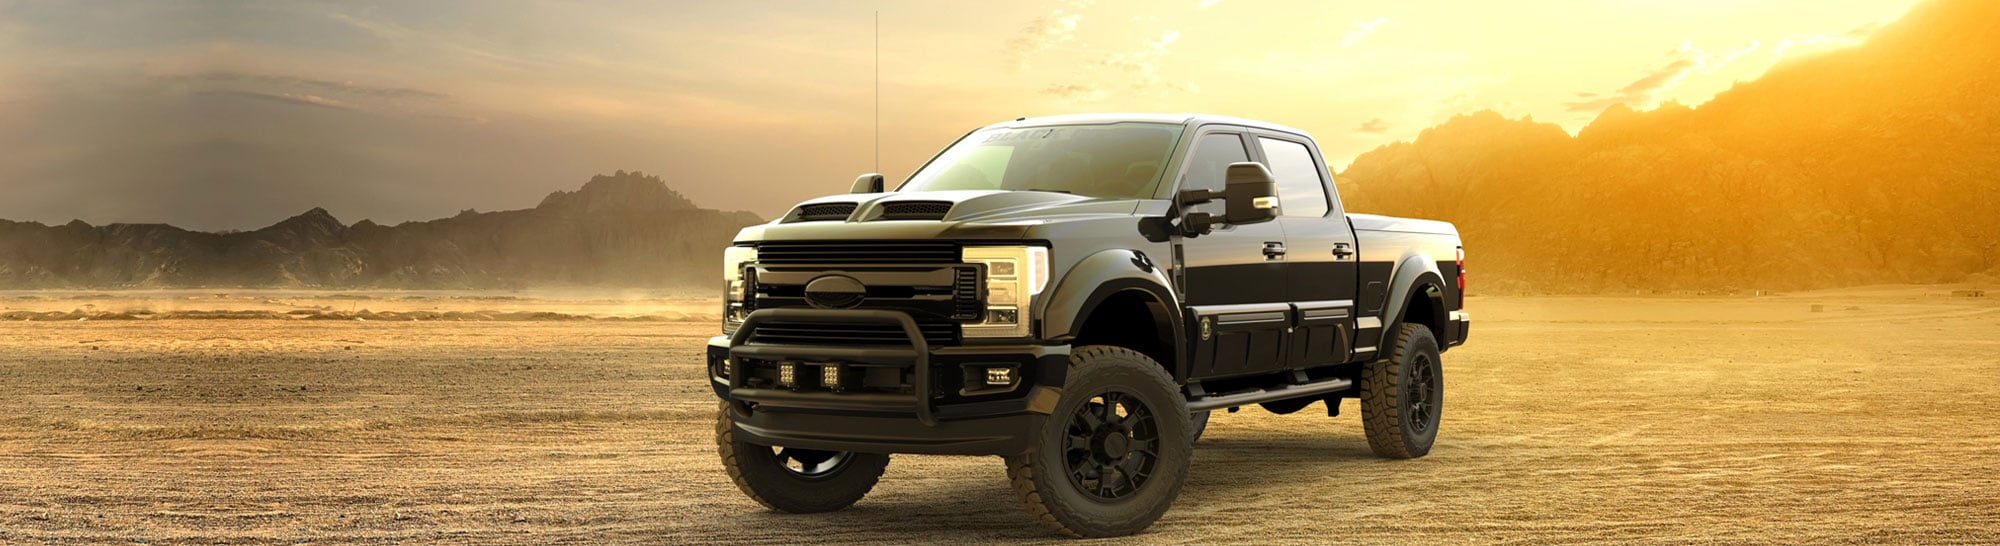 ford tuscany black ops special edition truck custom orders. Black Bedroom Furniture Sets. Home Design Ideas